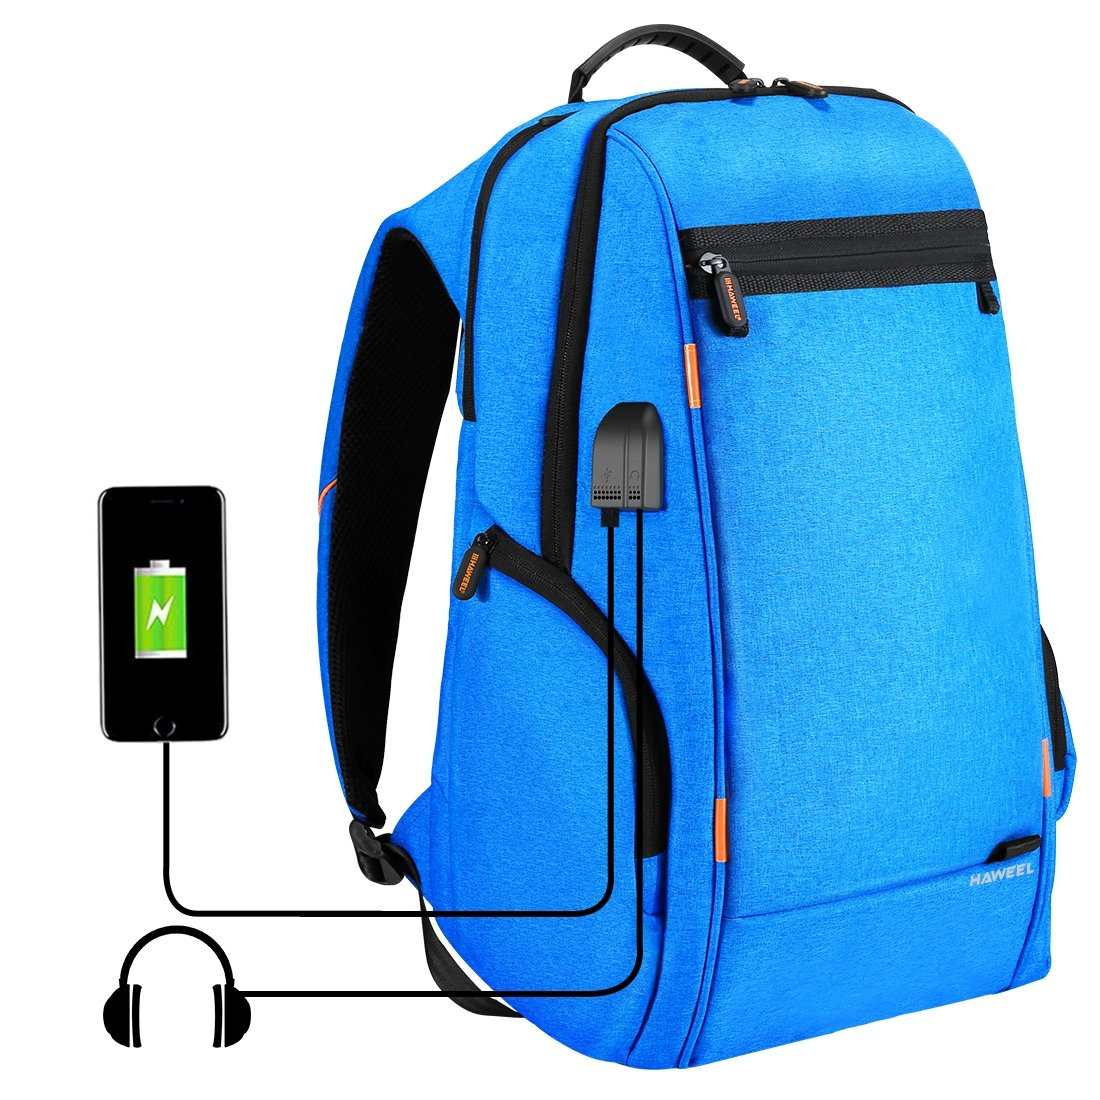 HAWEEL Outdoor Multi-function Solar Panel Power Breathable Casual Backpack Laptop Bag School Bookbag for College Travel Backpack, With USB Charging Port & Earphone Port (Blue) by HAWEEL (Image #1)